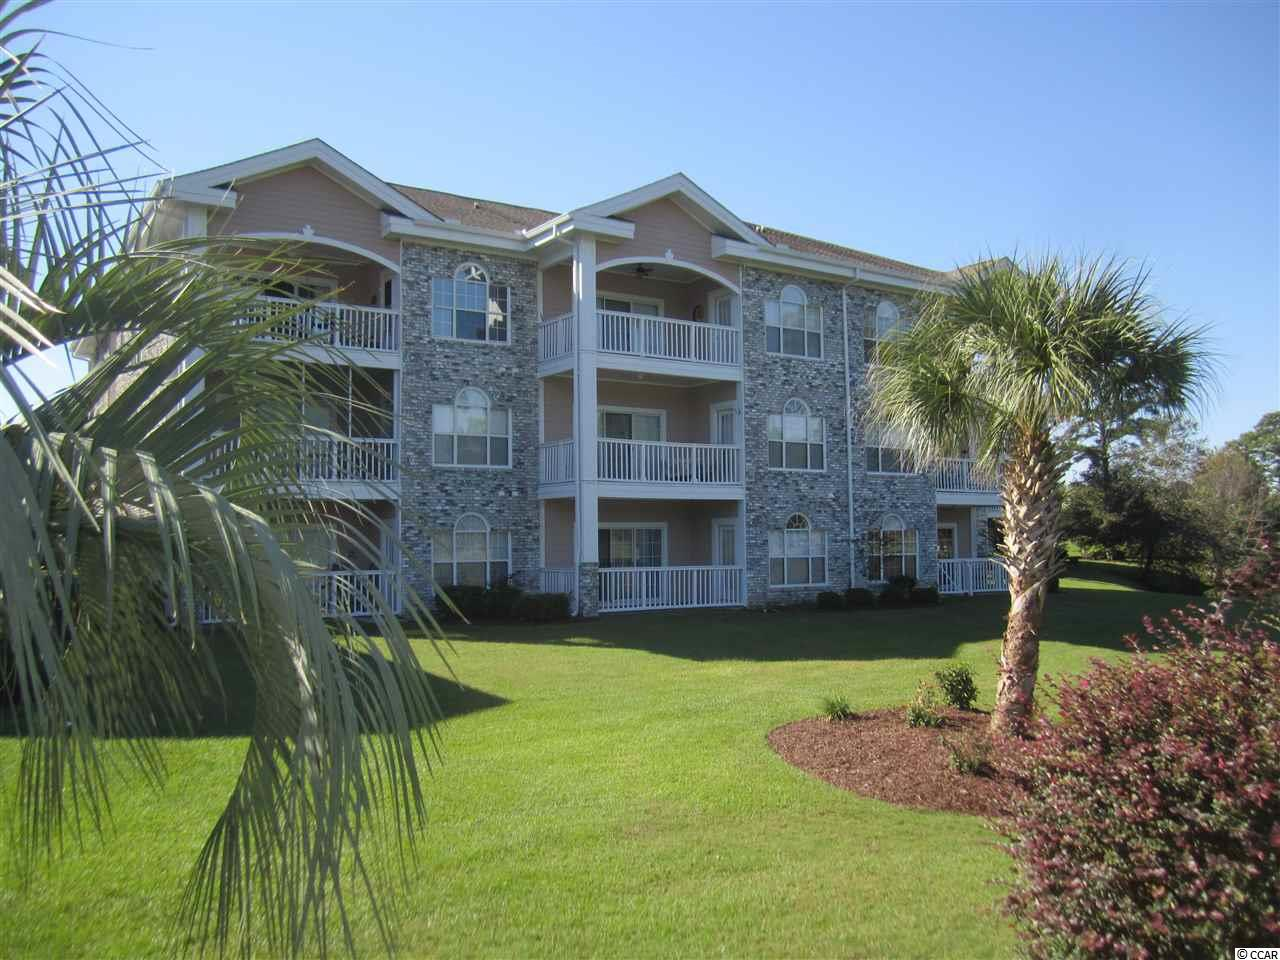 Condo / Townhome / Villa for Sale at 4647 WILD IRIS DRIVE 204 4647 WILD IRIS DRIVE 204 Myrtle Beach, South Carolina 29577 United States